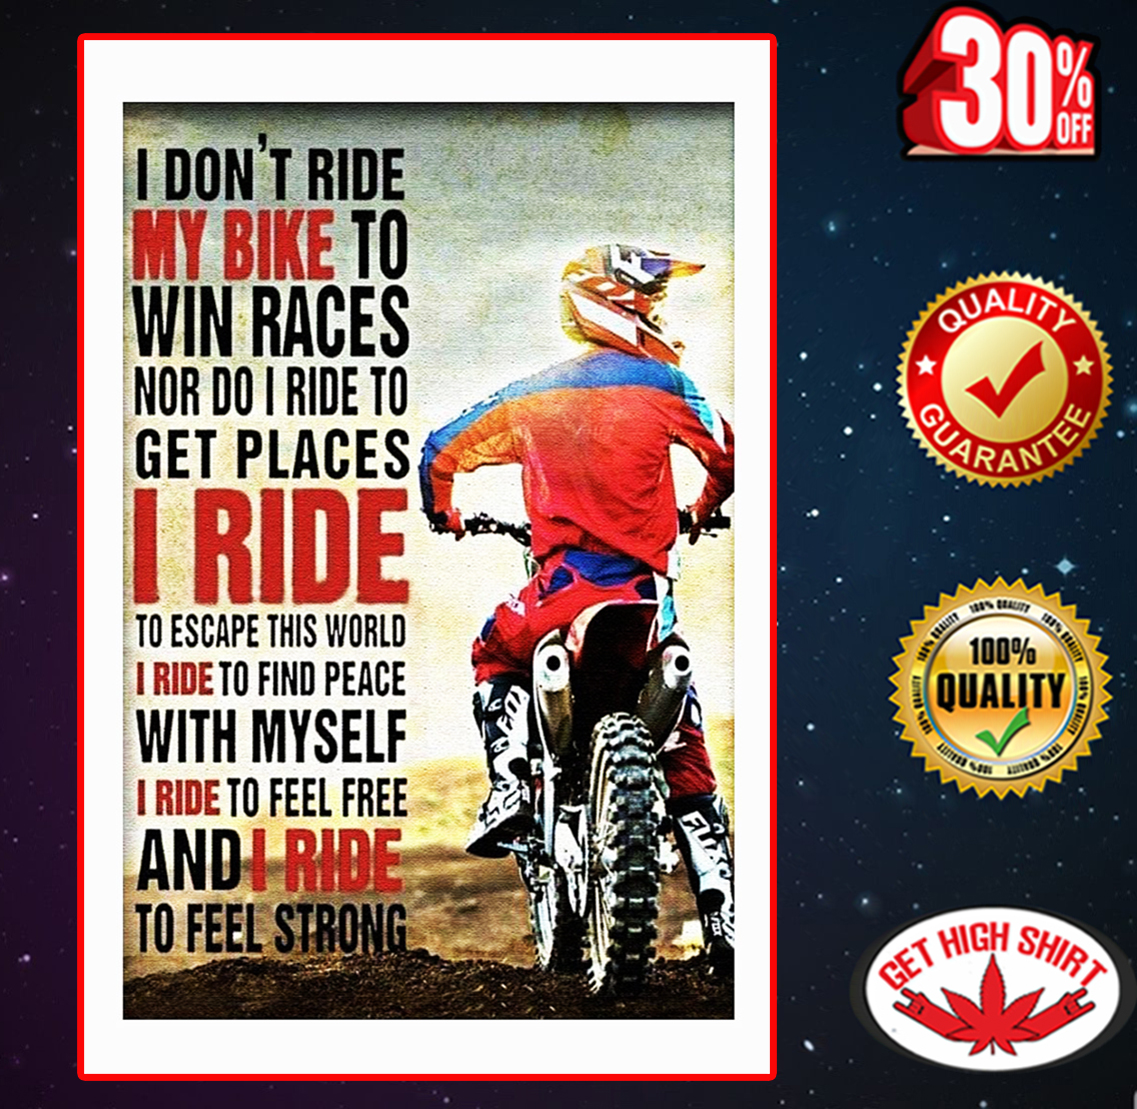 I don't ride my bike to win races poster 16x24